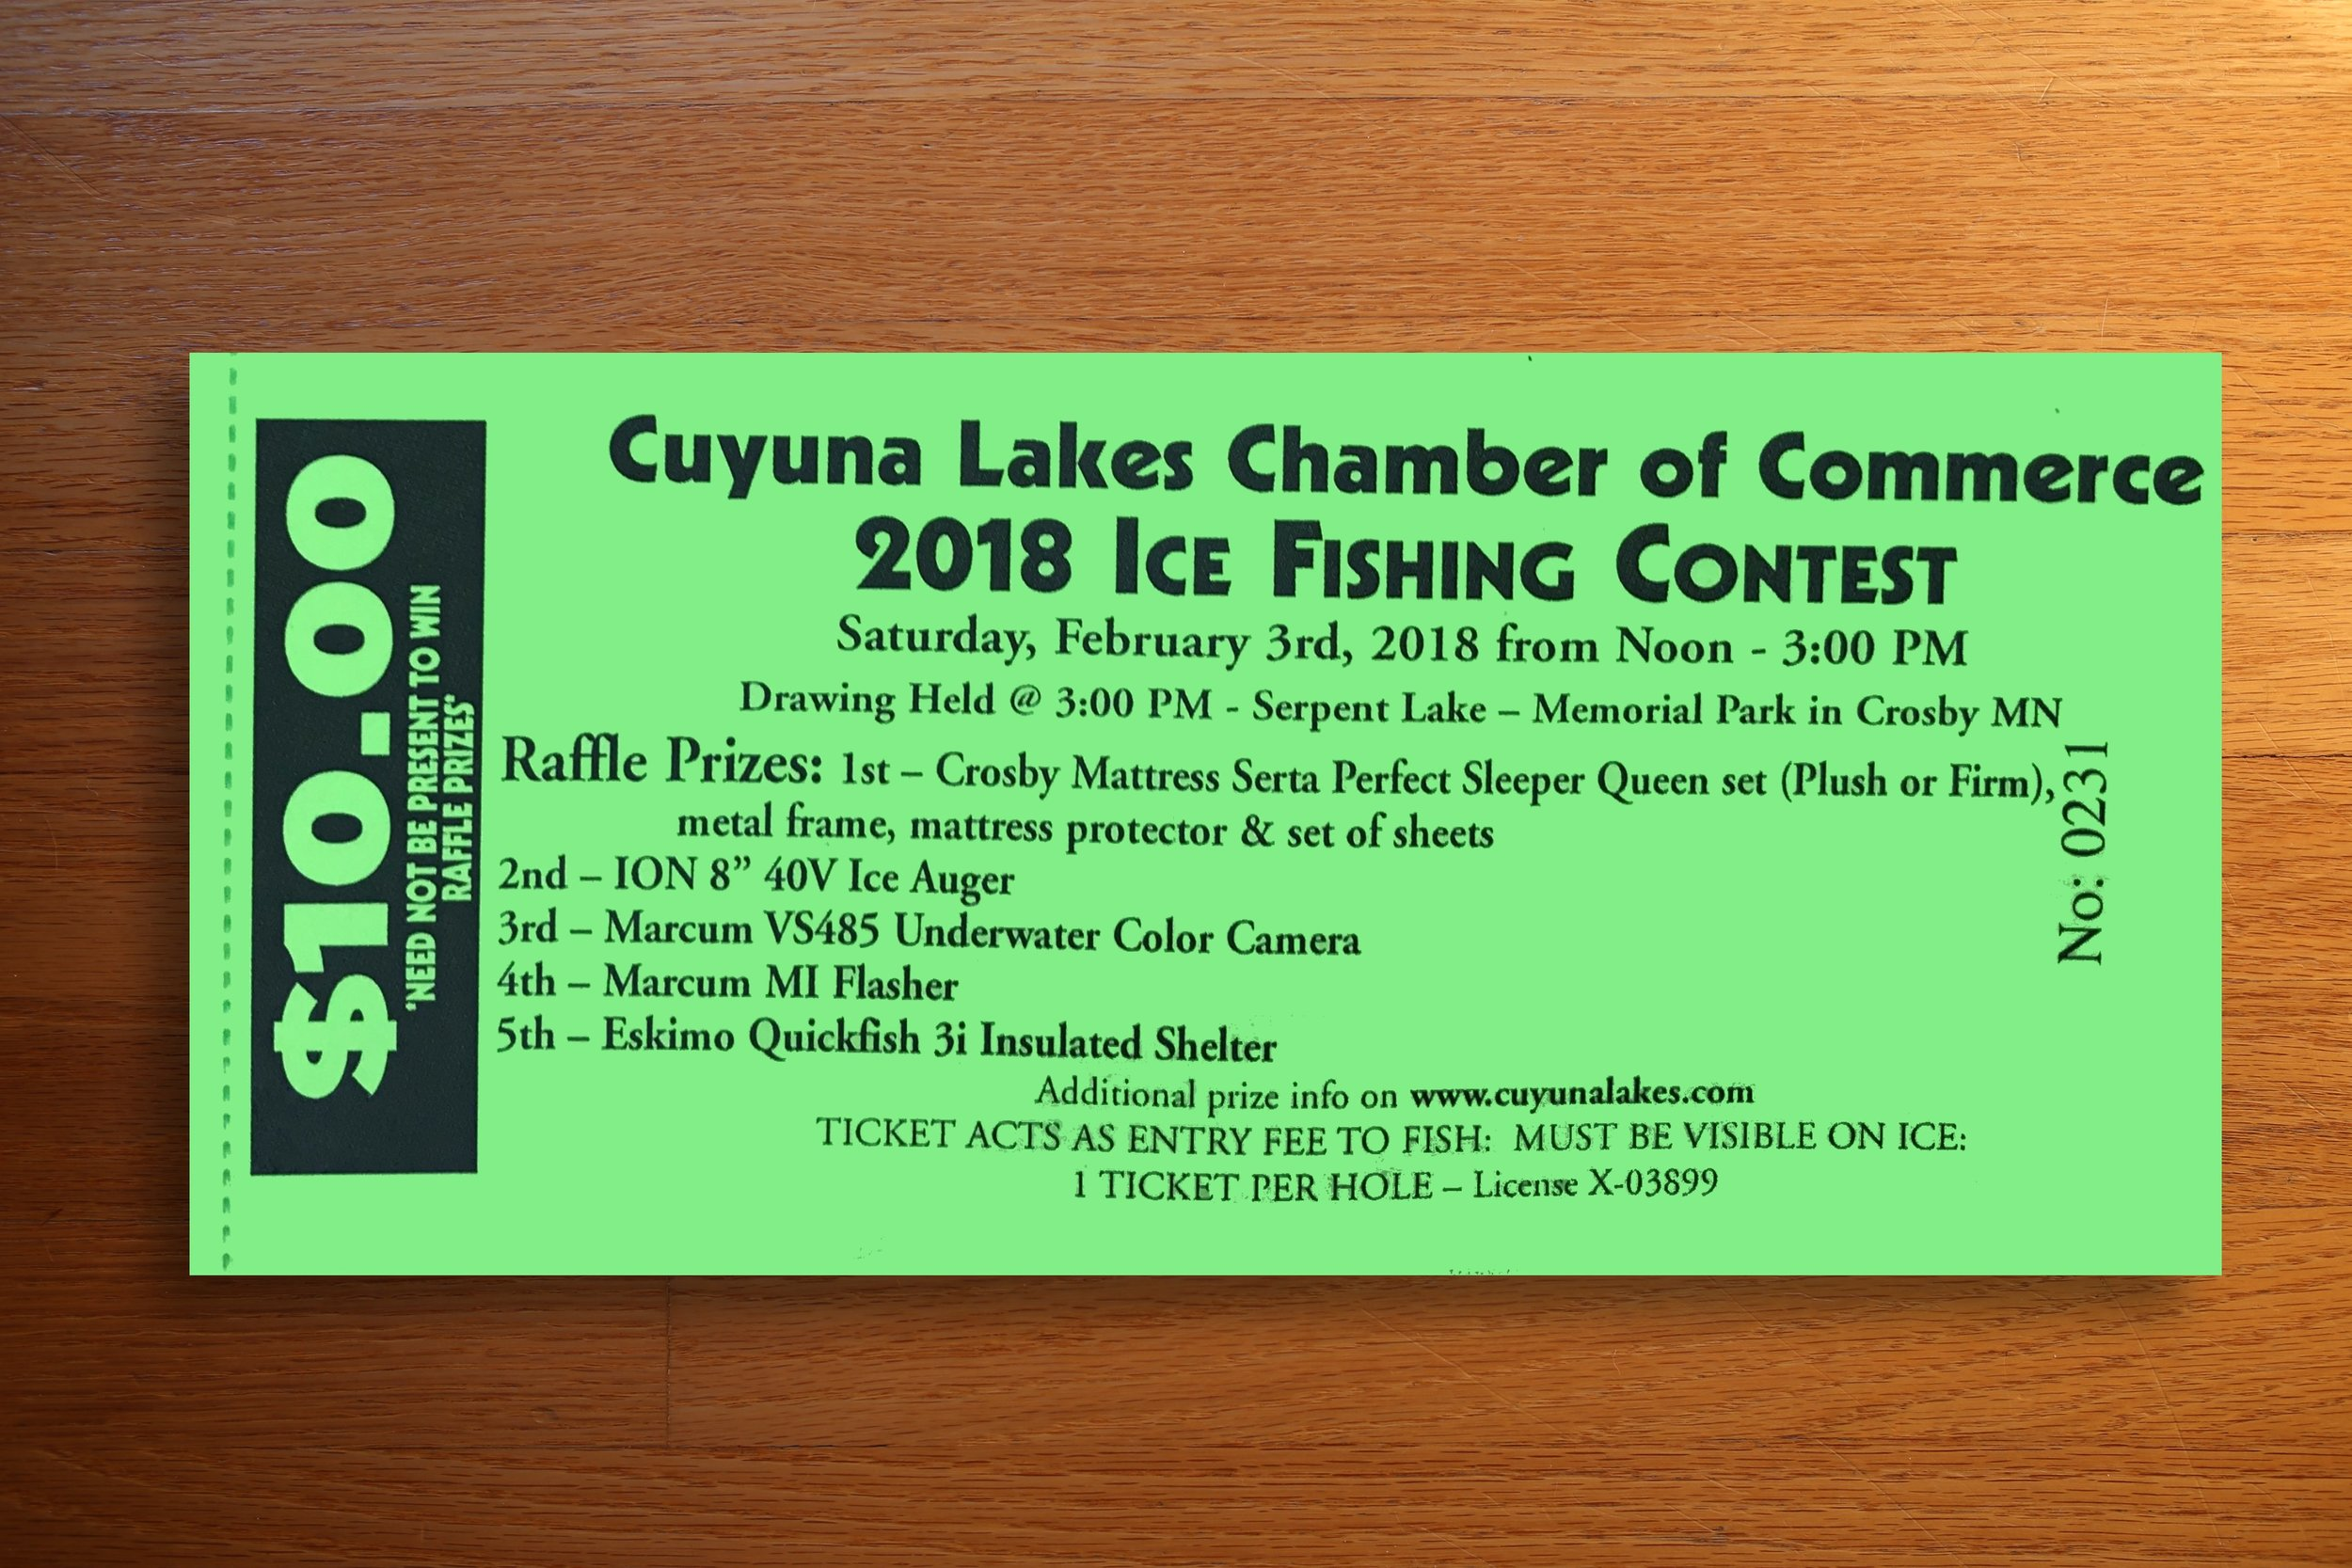 Sample Raffle Ticket - 2018 Ice Fishing Contest